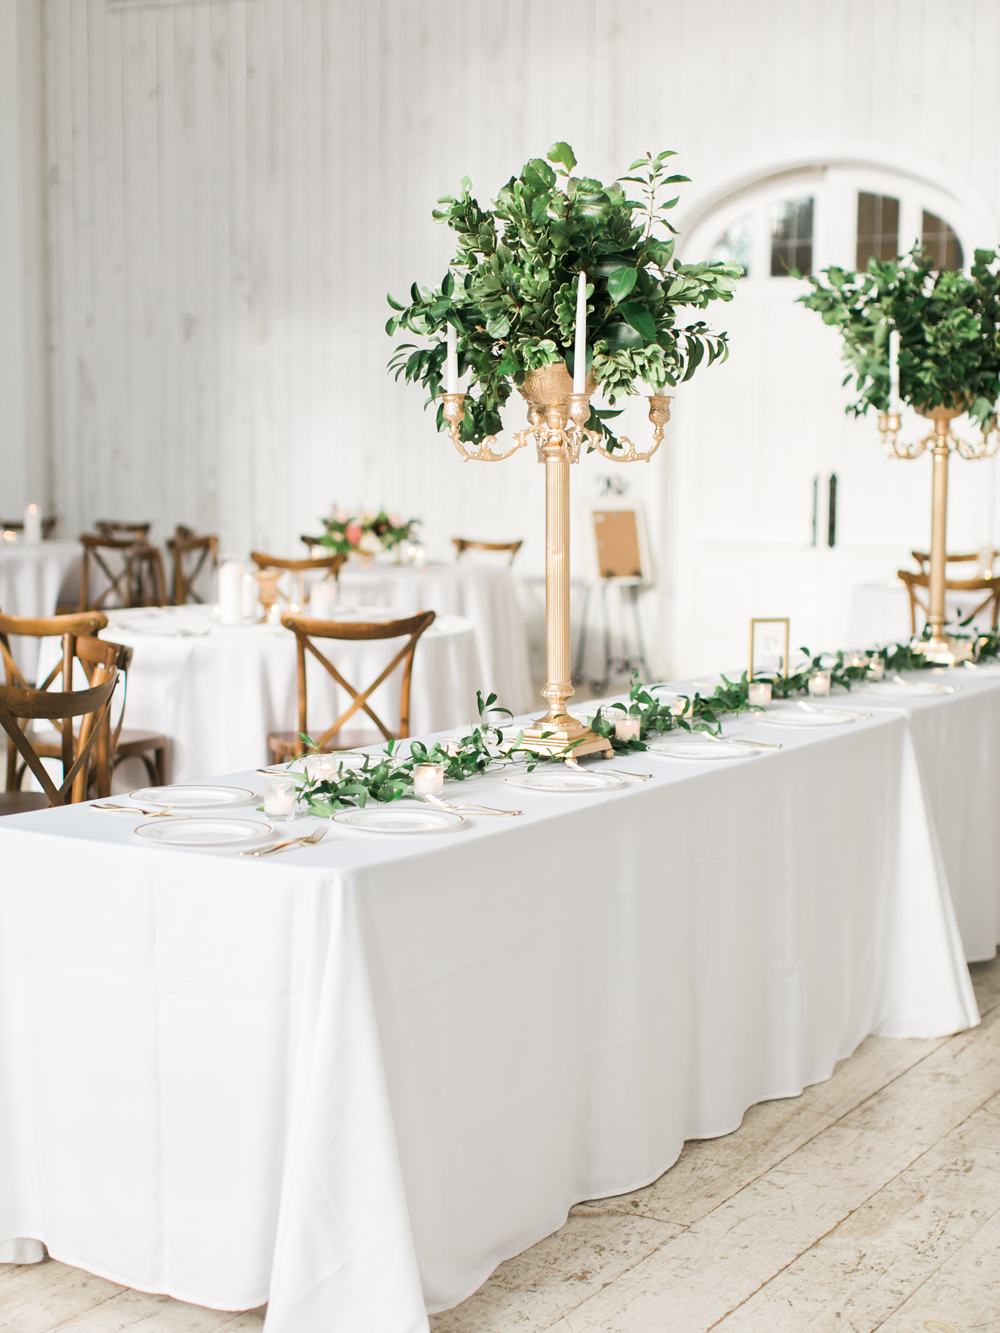 romantic receptions - photo by Elisabeth Carol Photography http://ruffledblog.com/picturesque-garden-wedding-at-white-sparrow-barn